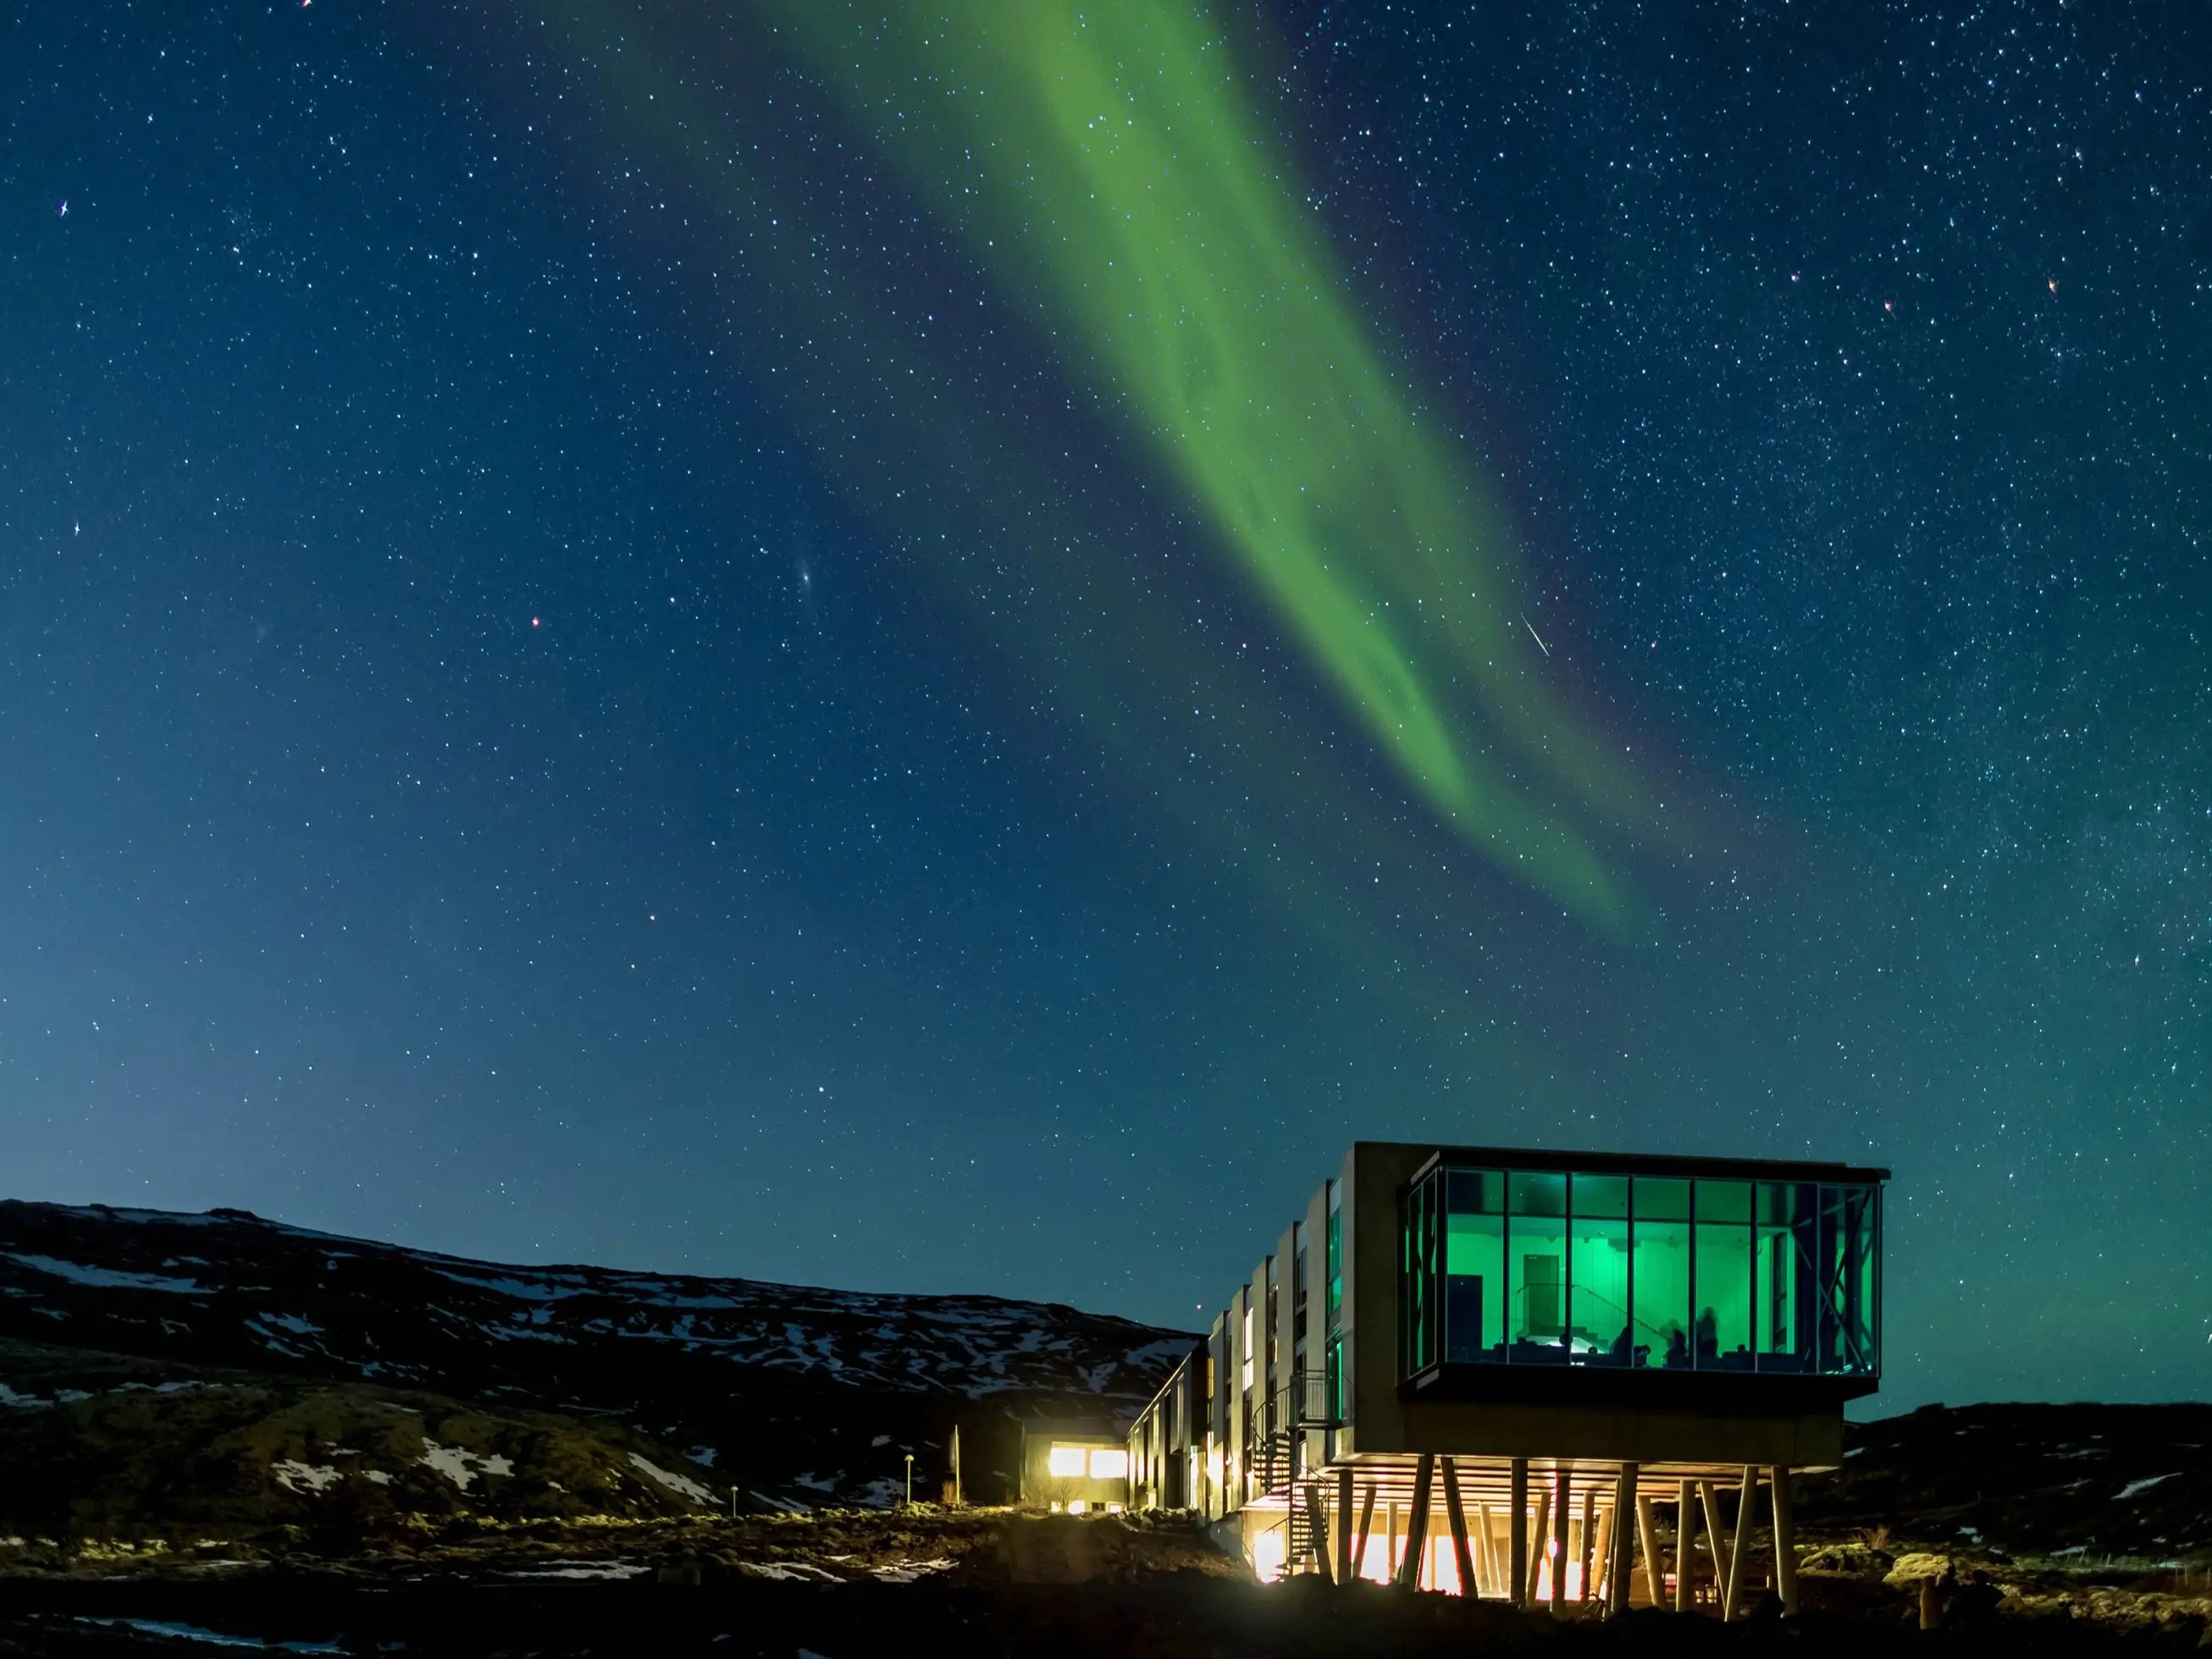 Inside Iceland'sION Luxury Adventure Hotel you'll find the Northern Lights Bar, a bardesigned explicitly for optimal Northern Lights viewing. An hour from Reykjavík, amid mountains and lava fields, sits this glass cage of sorts, which juts out from the end of the hotel and occasionally has astronomers on hand to drop their aurora borealis knowledge.